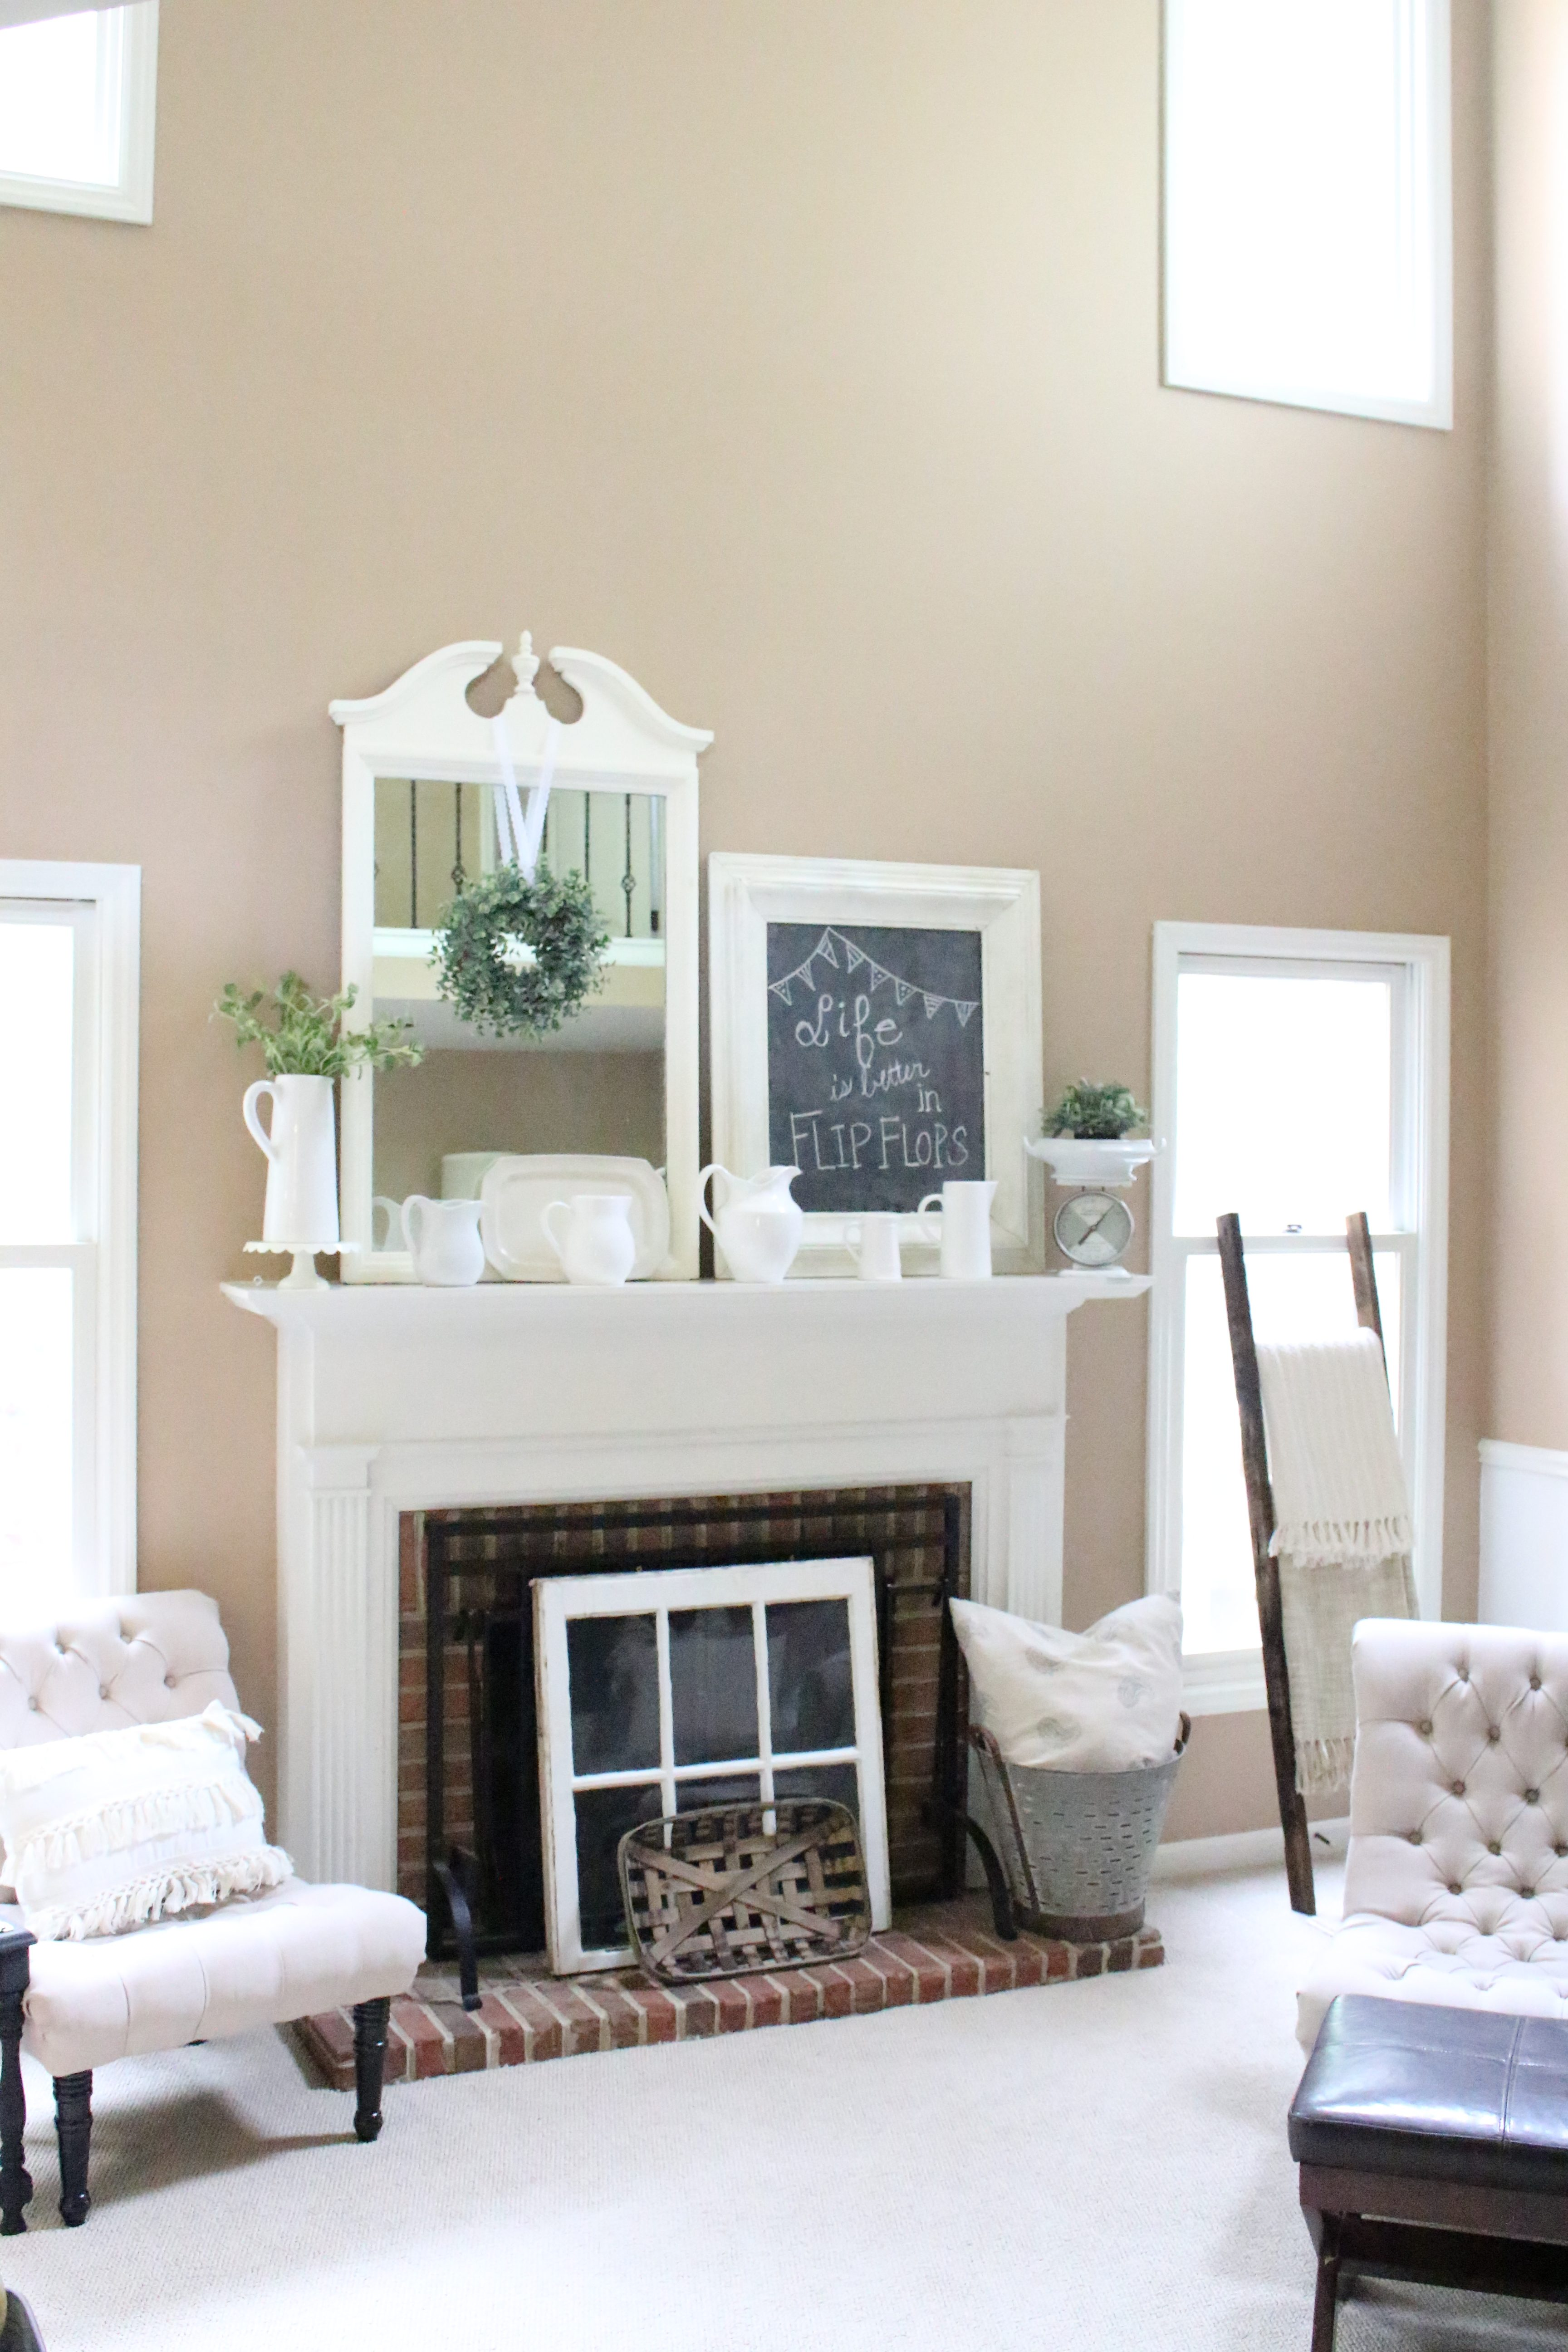 Decorate Your Mantel: Farmhouse Summer Mantel | My Life From Home